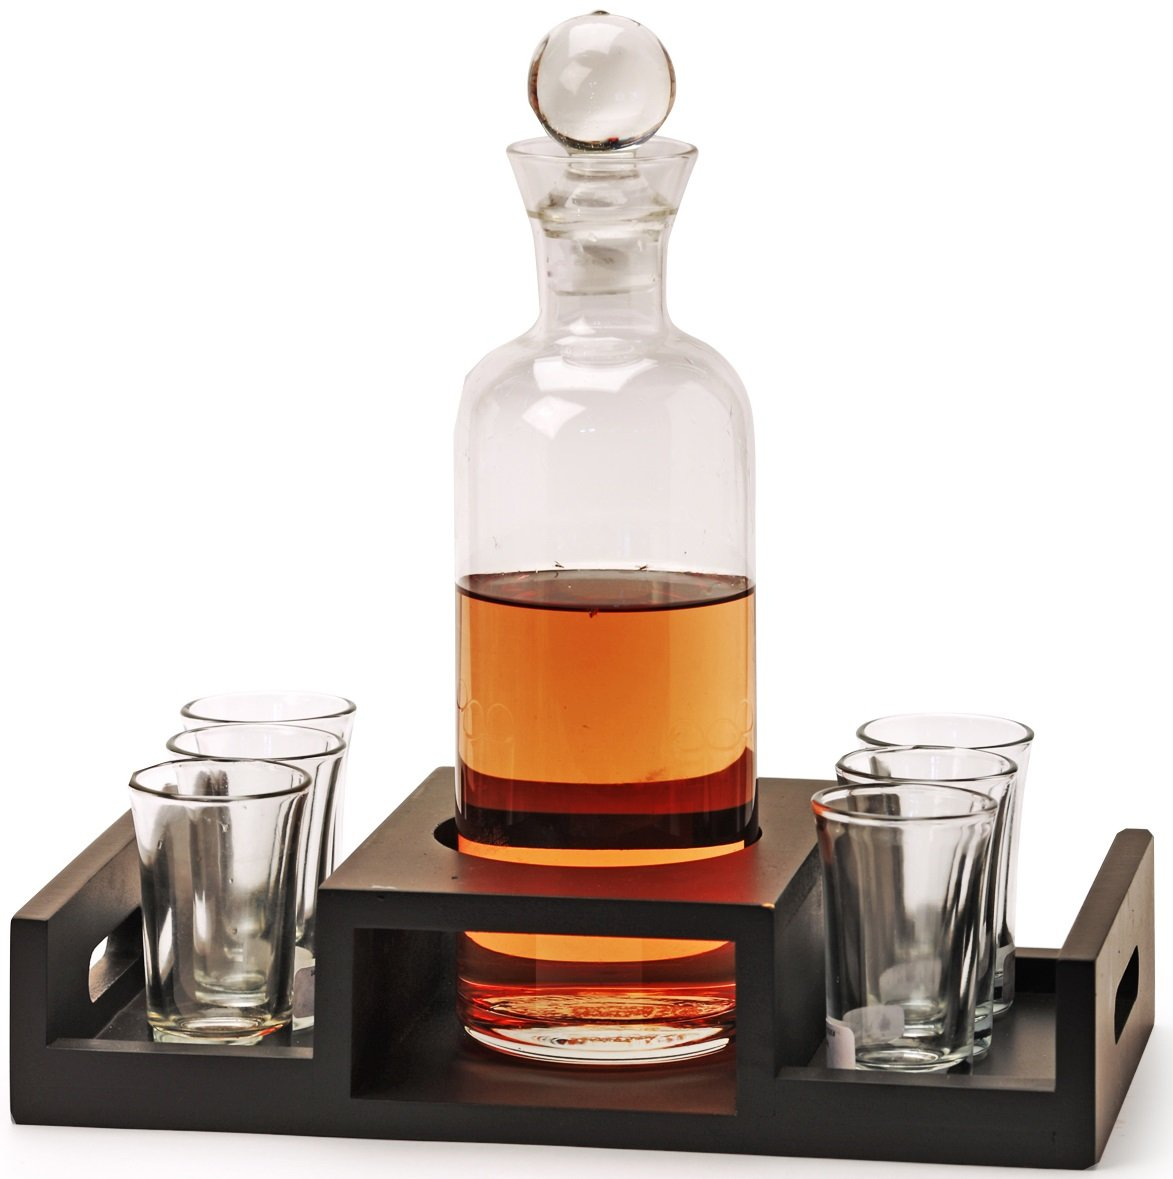 Circleware Uplift Shotglass Set | amazon.com